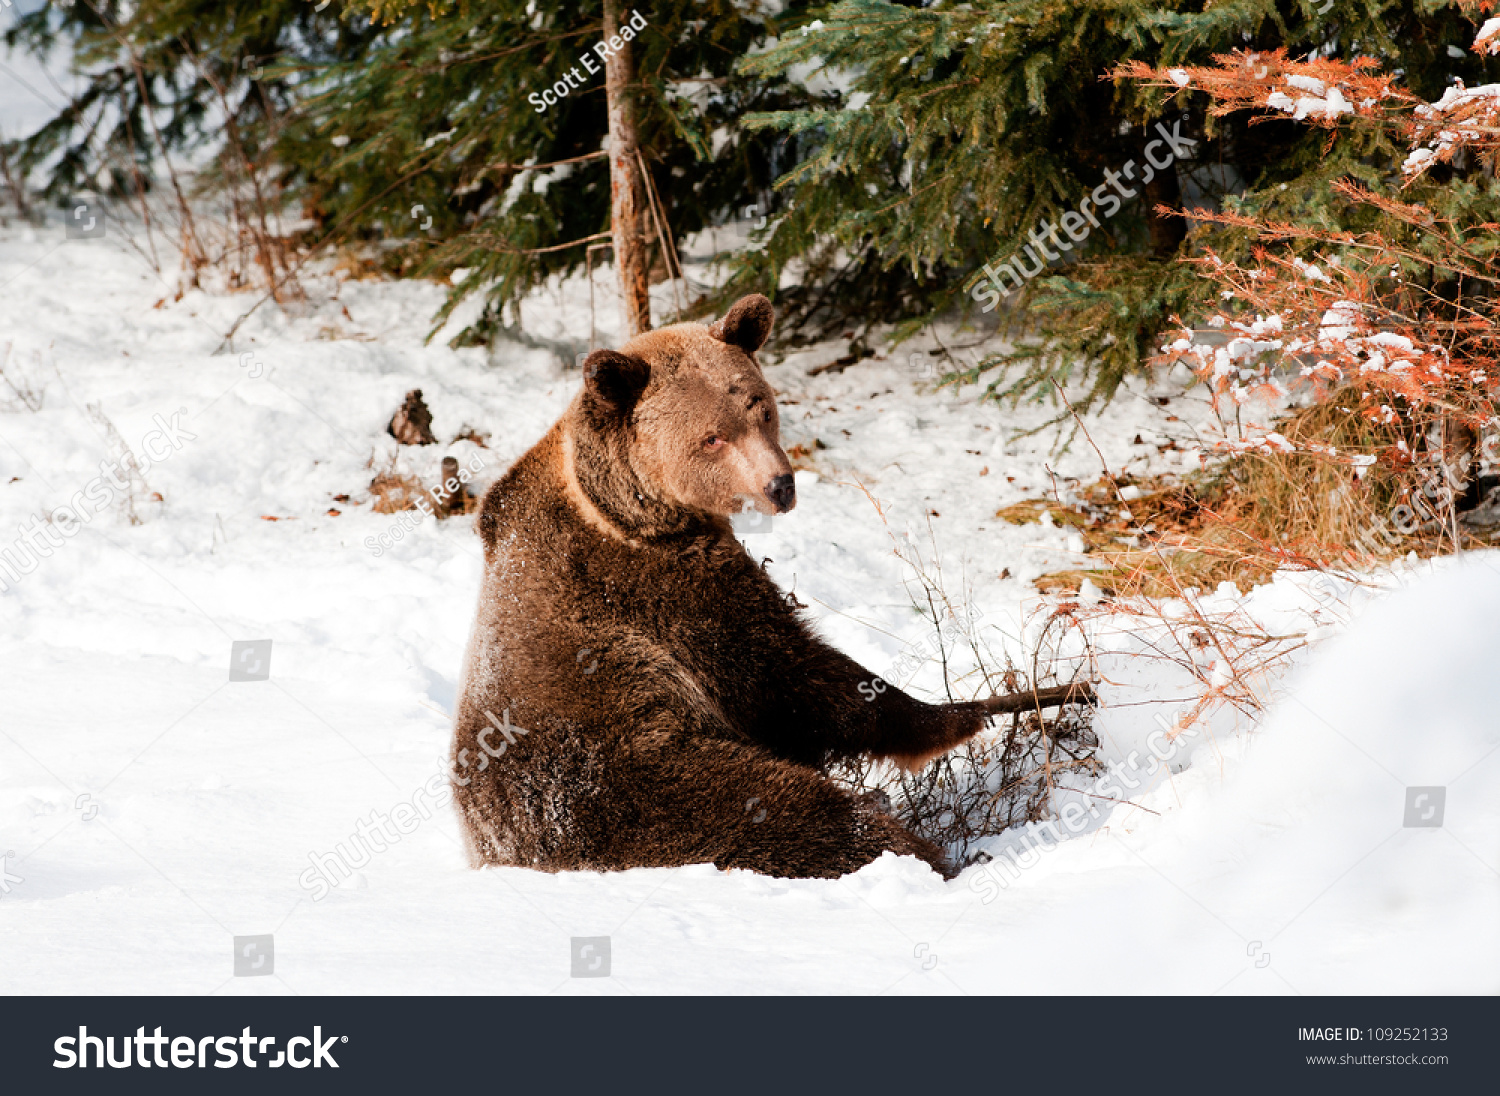 Grizzly Bear Attacks How wildlife investigators found a